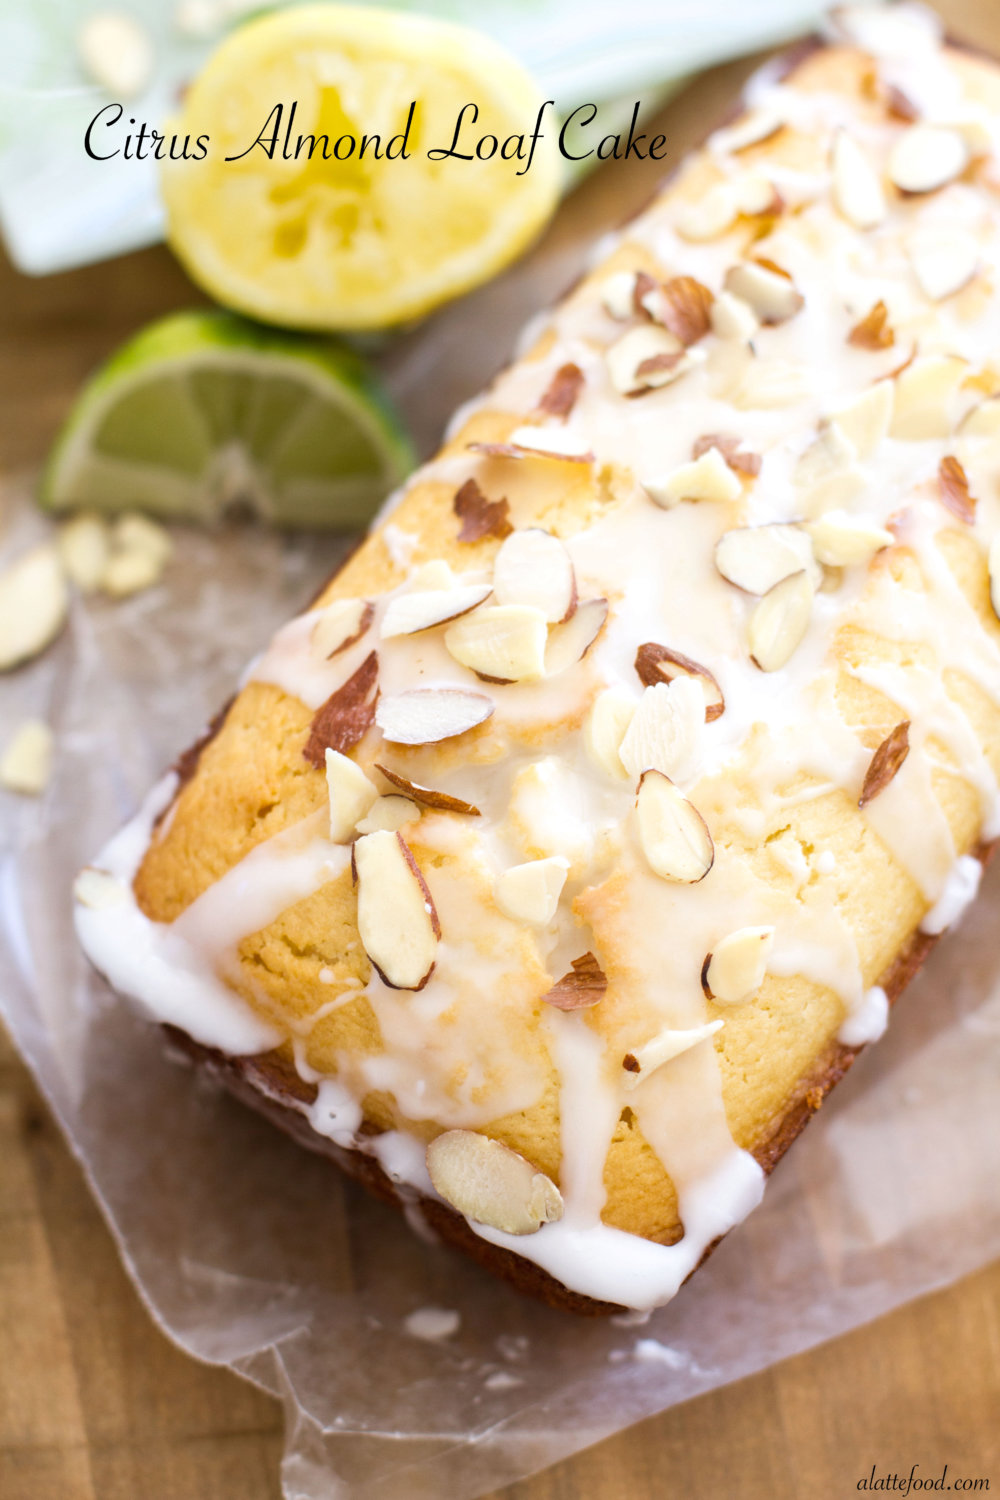 Citrus Almond Loaf Cake